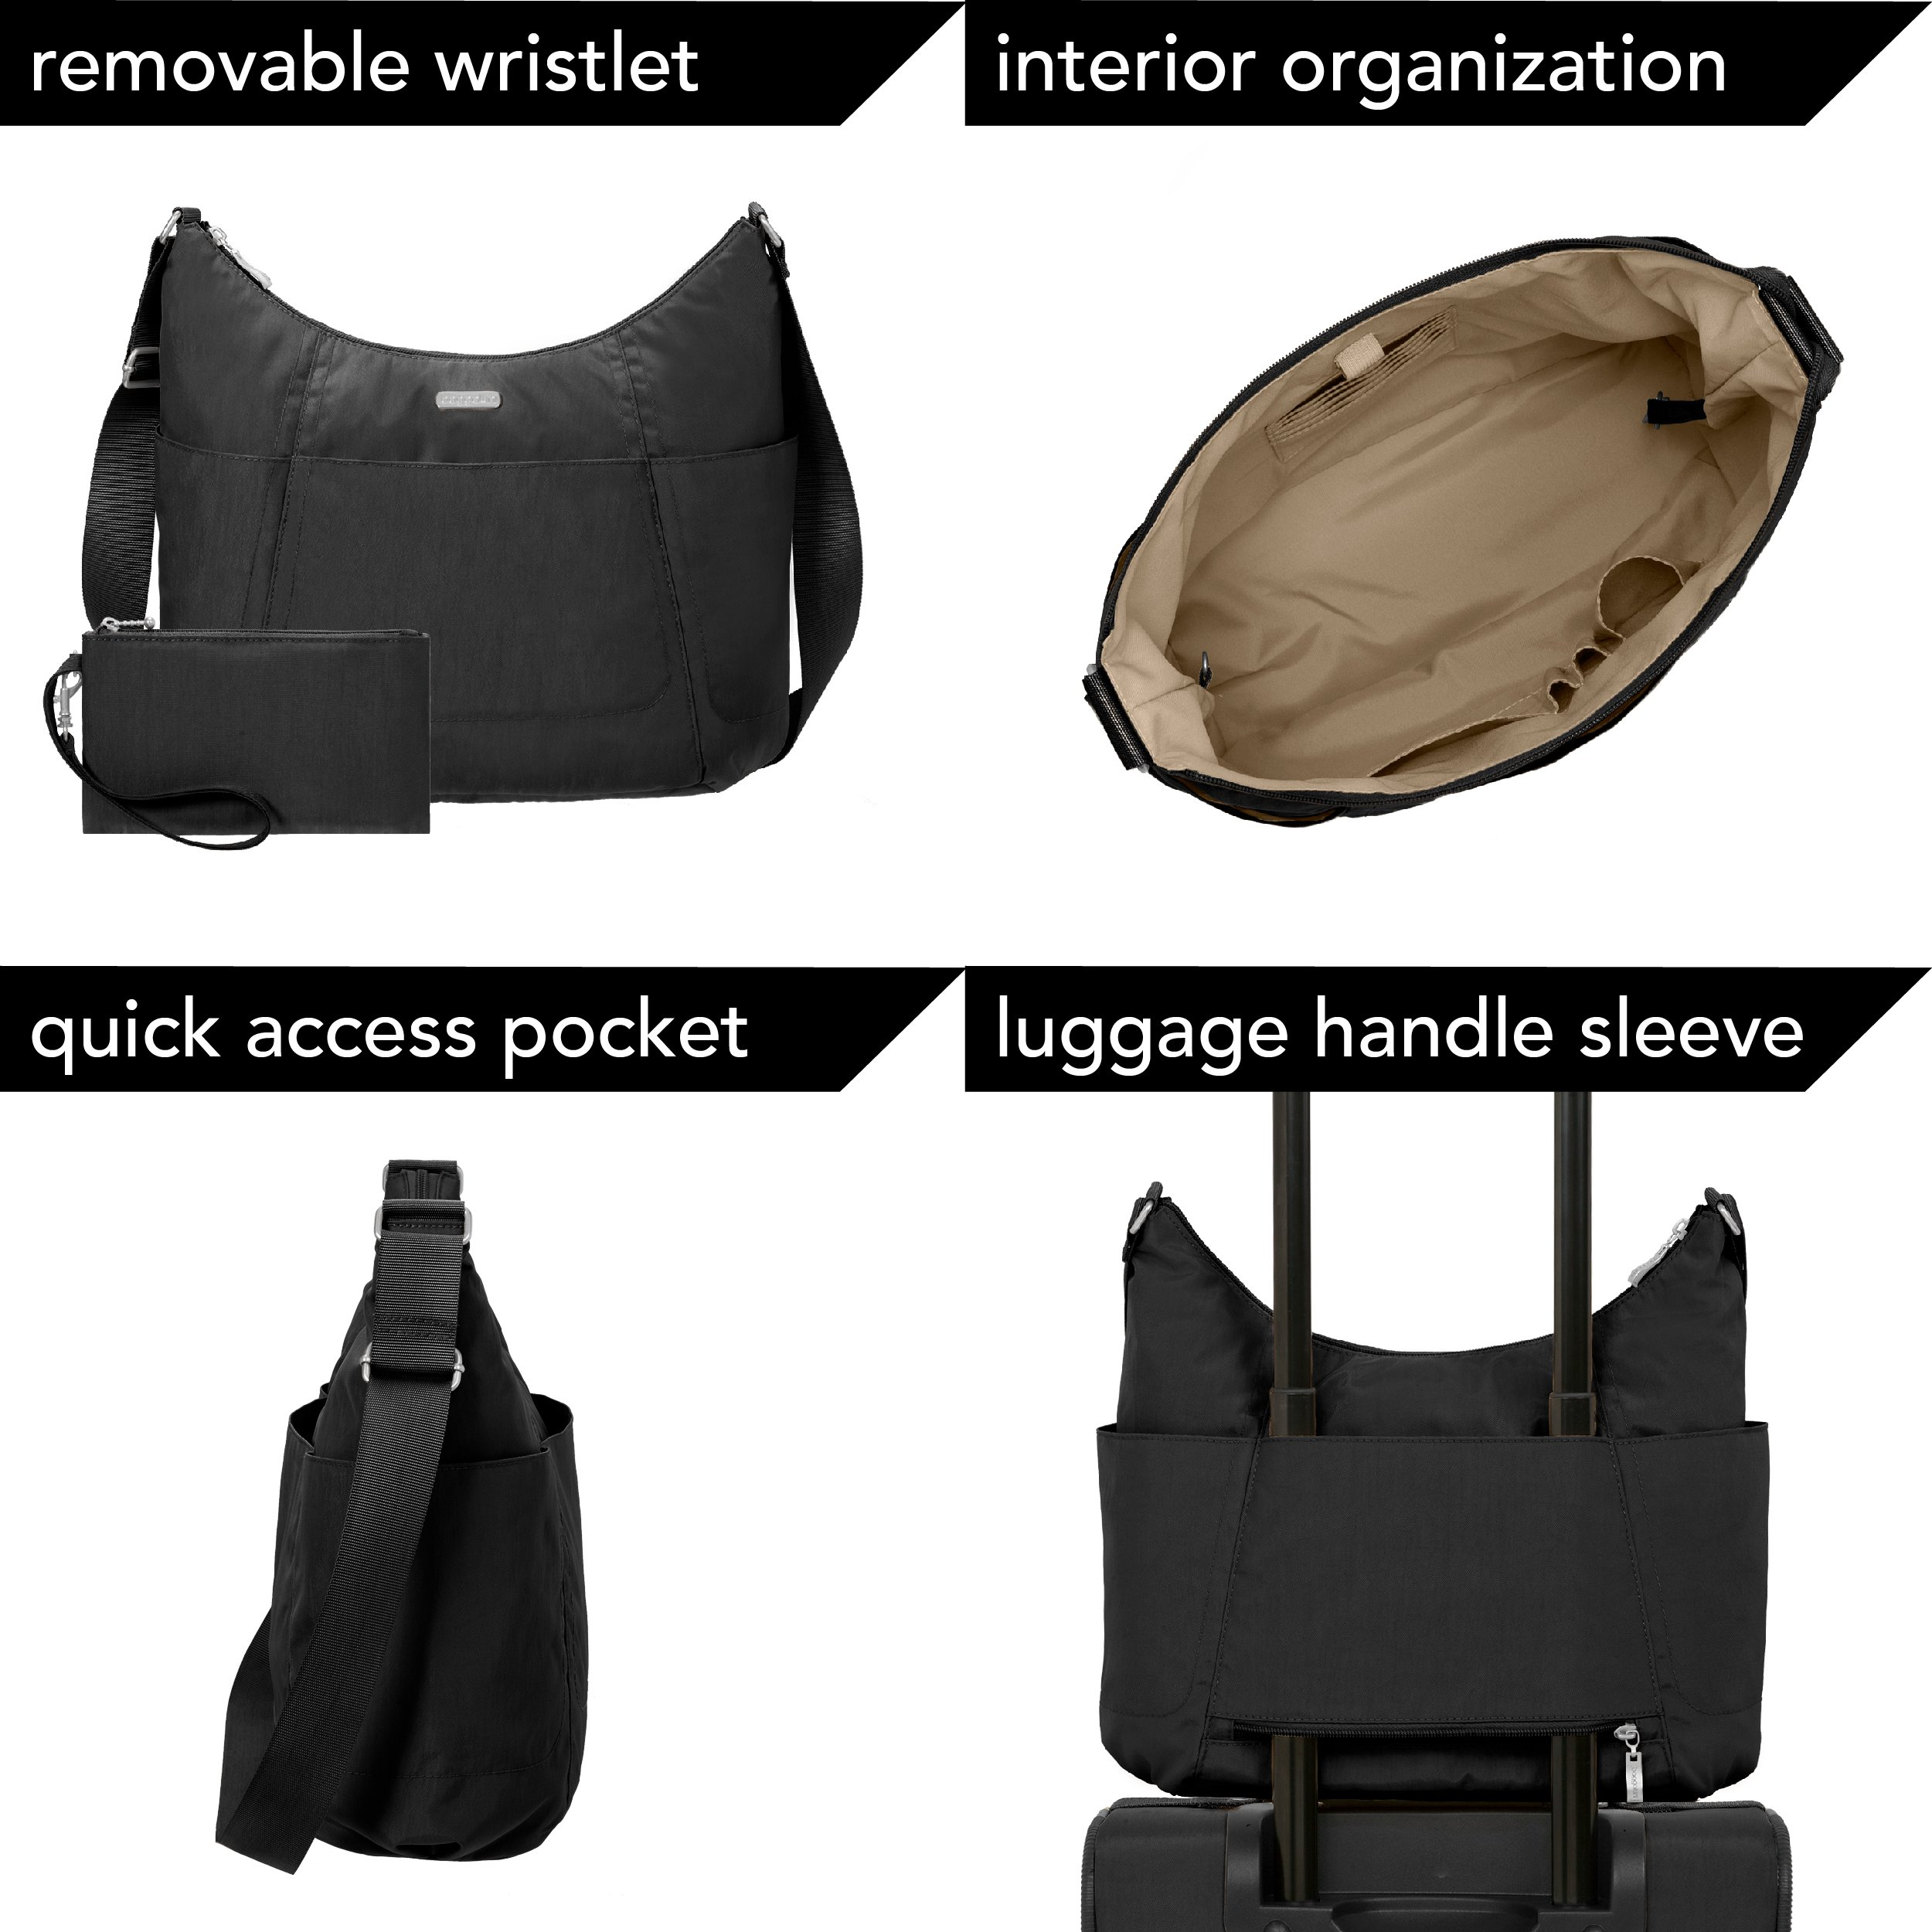 Baggallini Hobo Travel Tote, Black, One Size by Baggallini (Image #1)